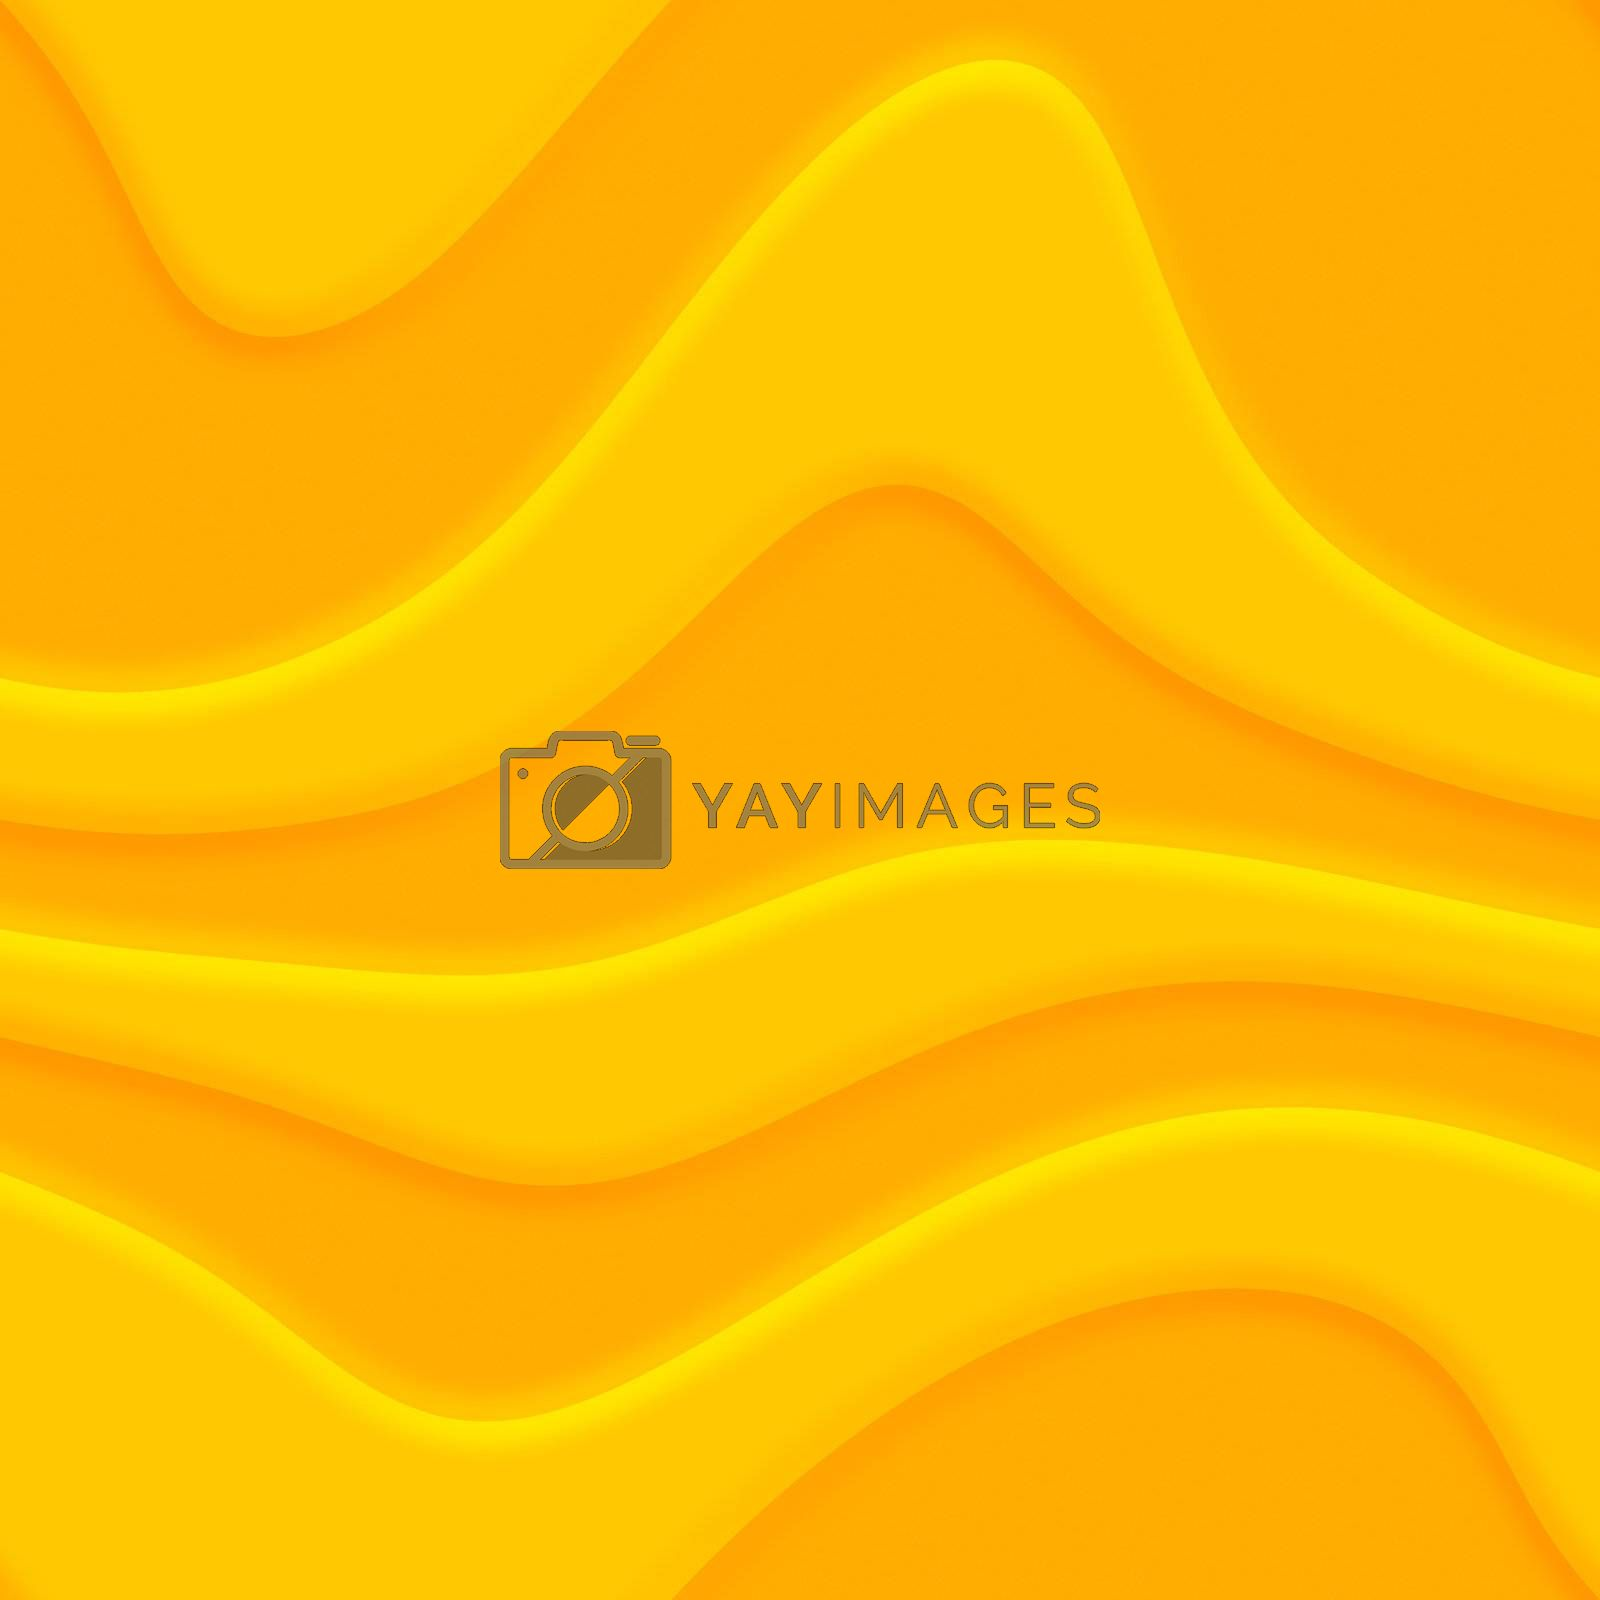 A yellow / orange abstract background illustration.